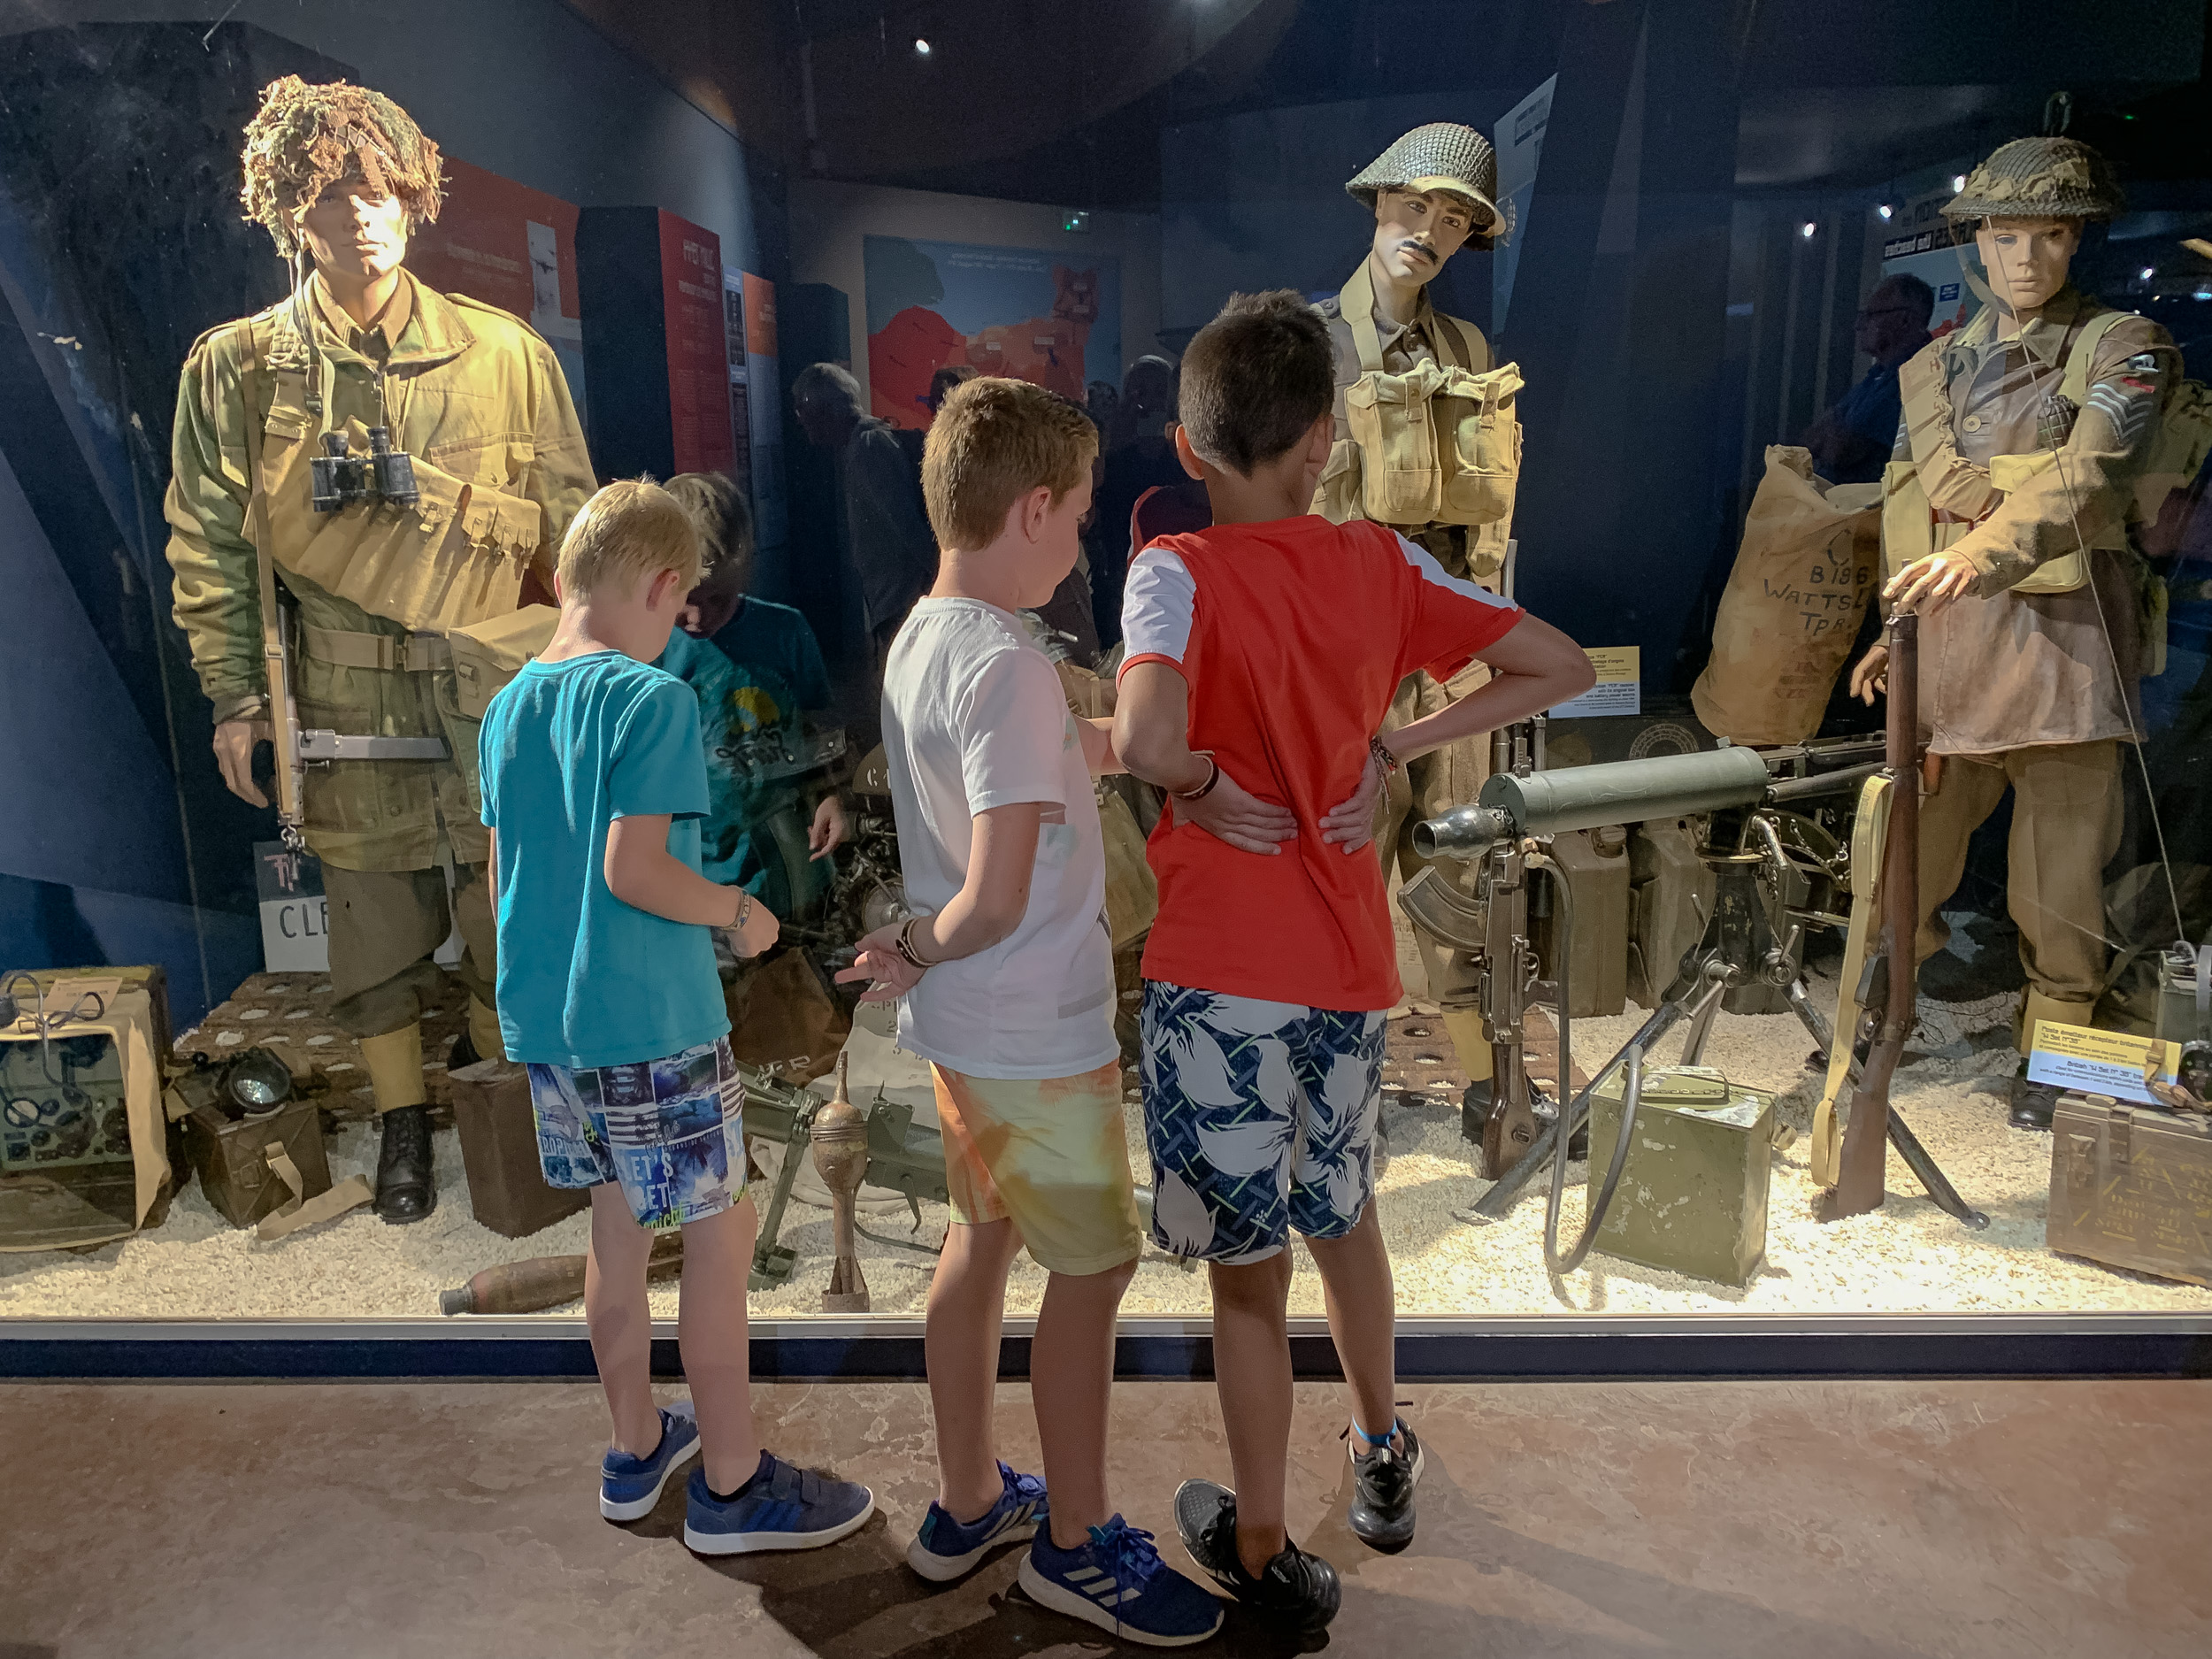 Memorial Museum of the Battle of Normandy Bayeux